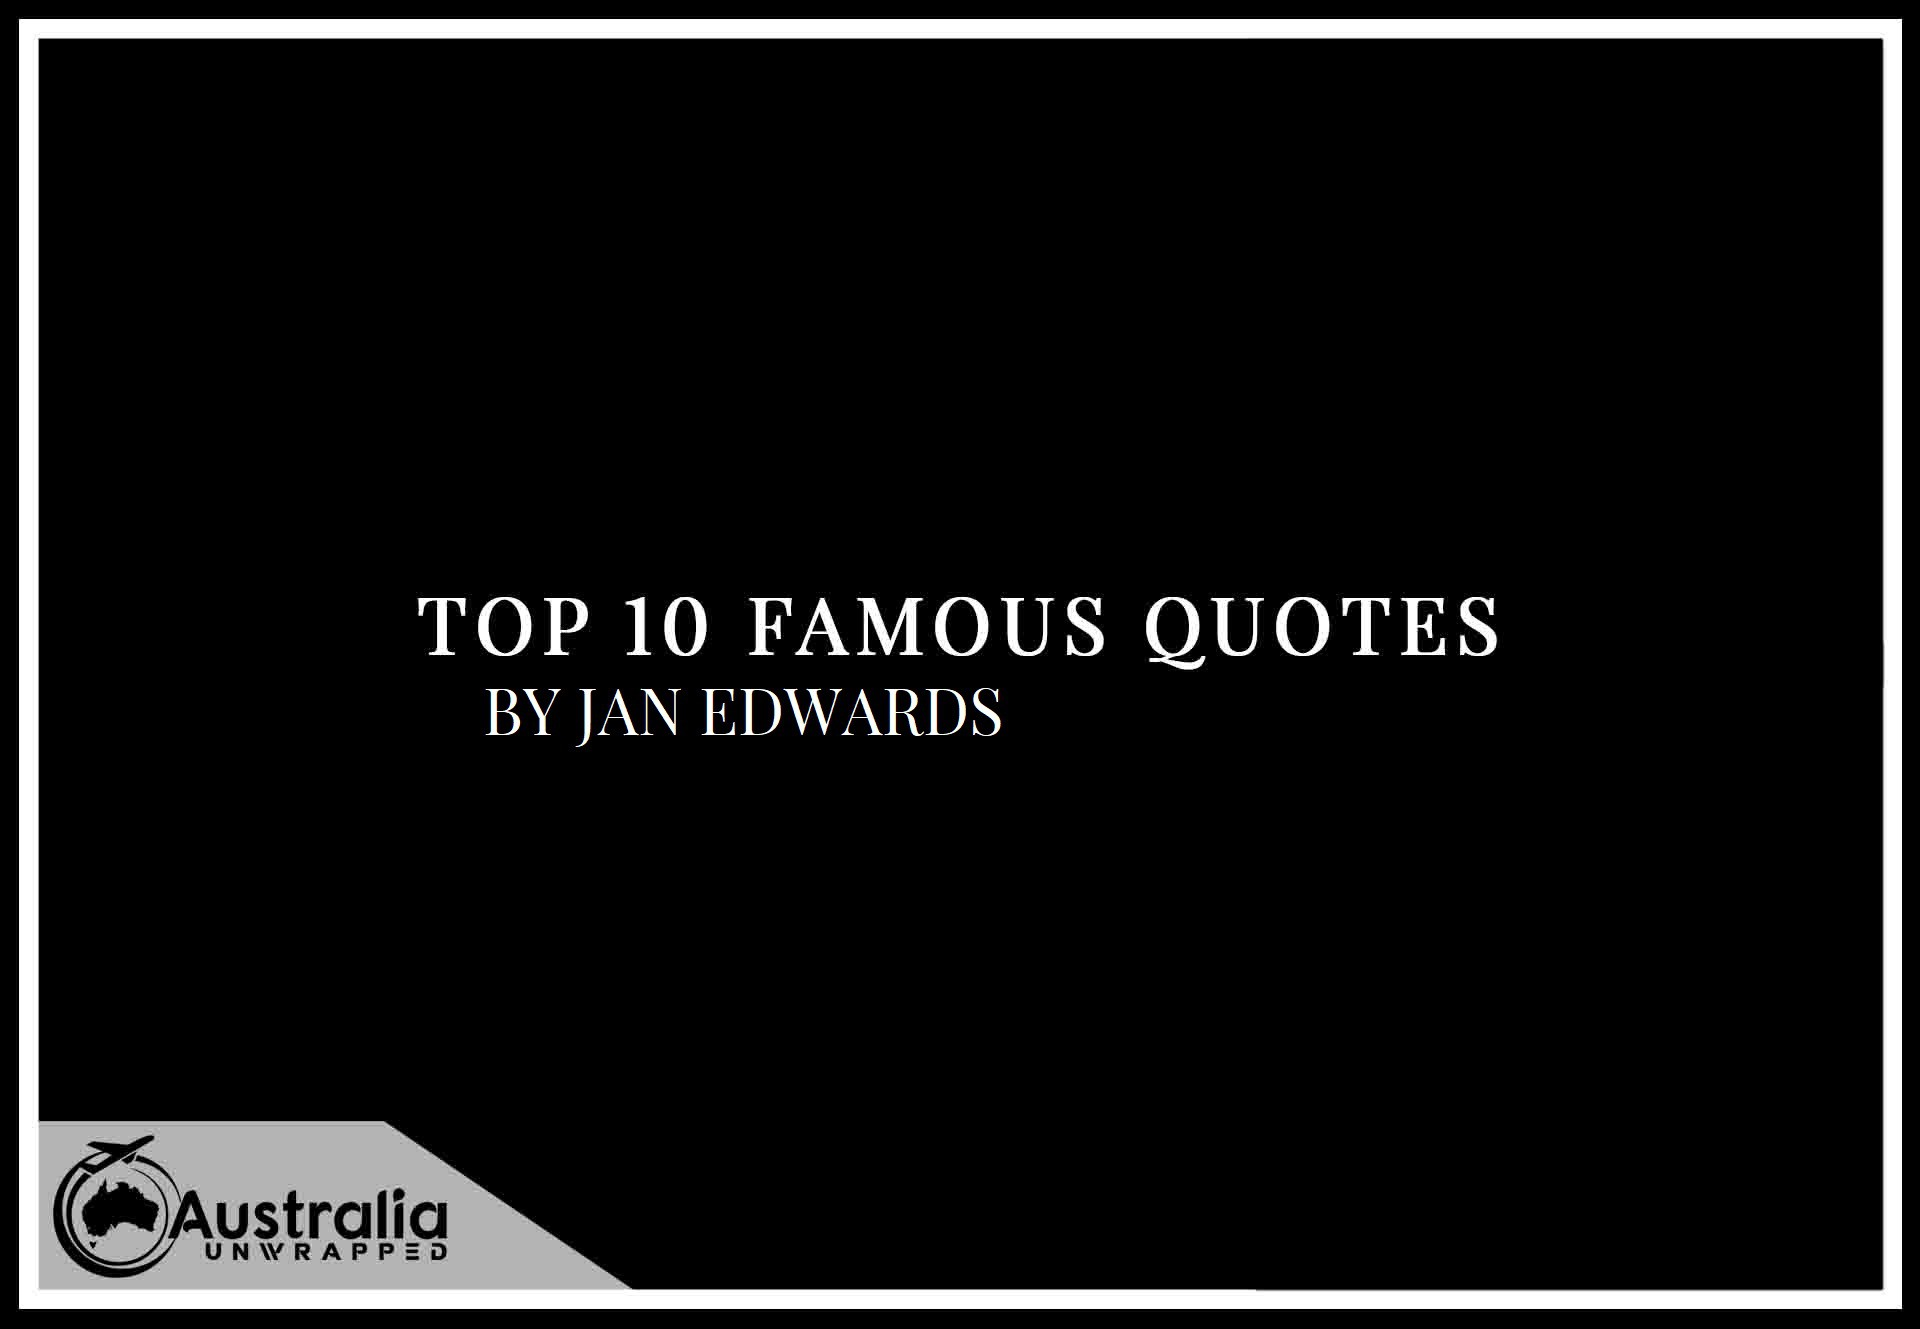 Top 10 Famous Quotes by Author Janet Edwards